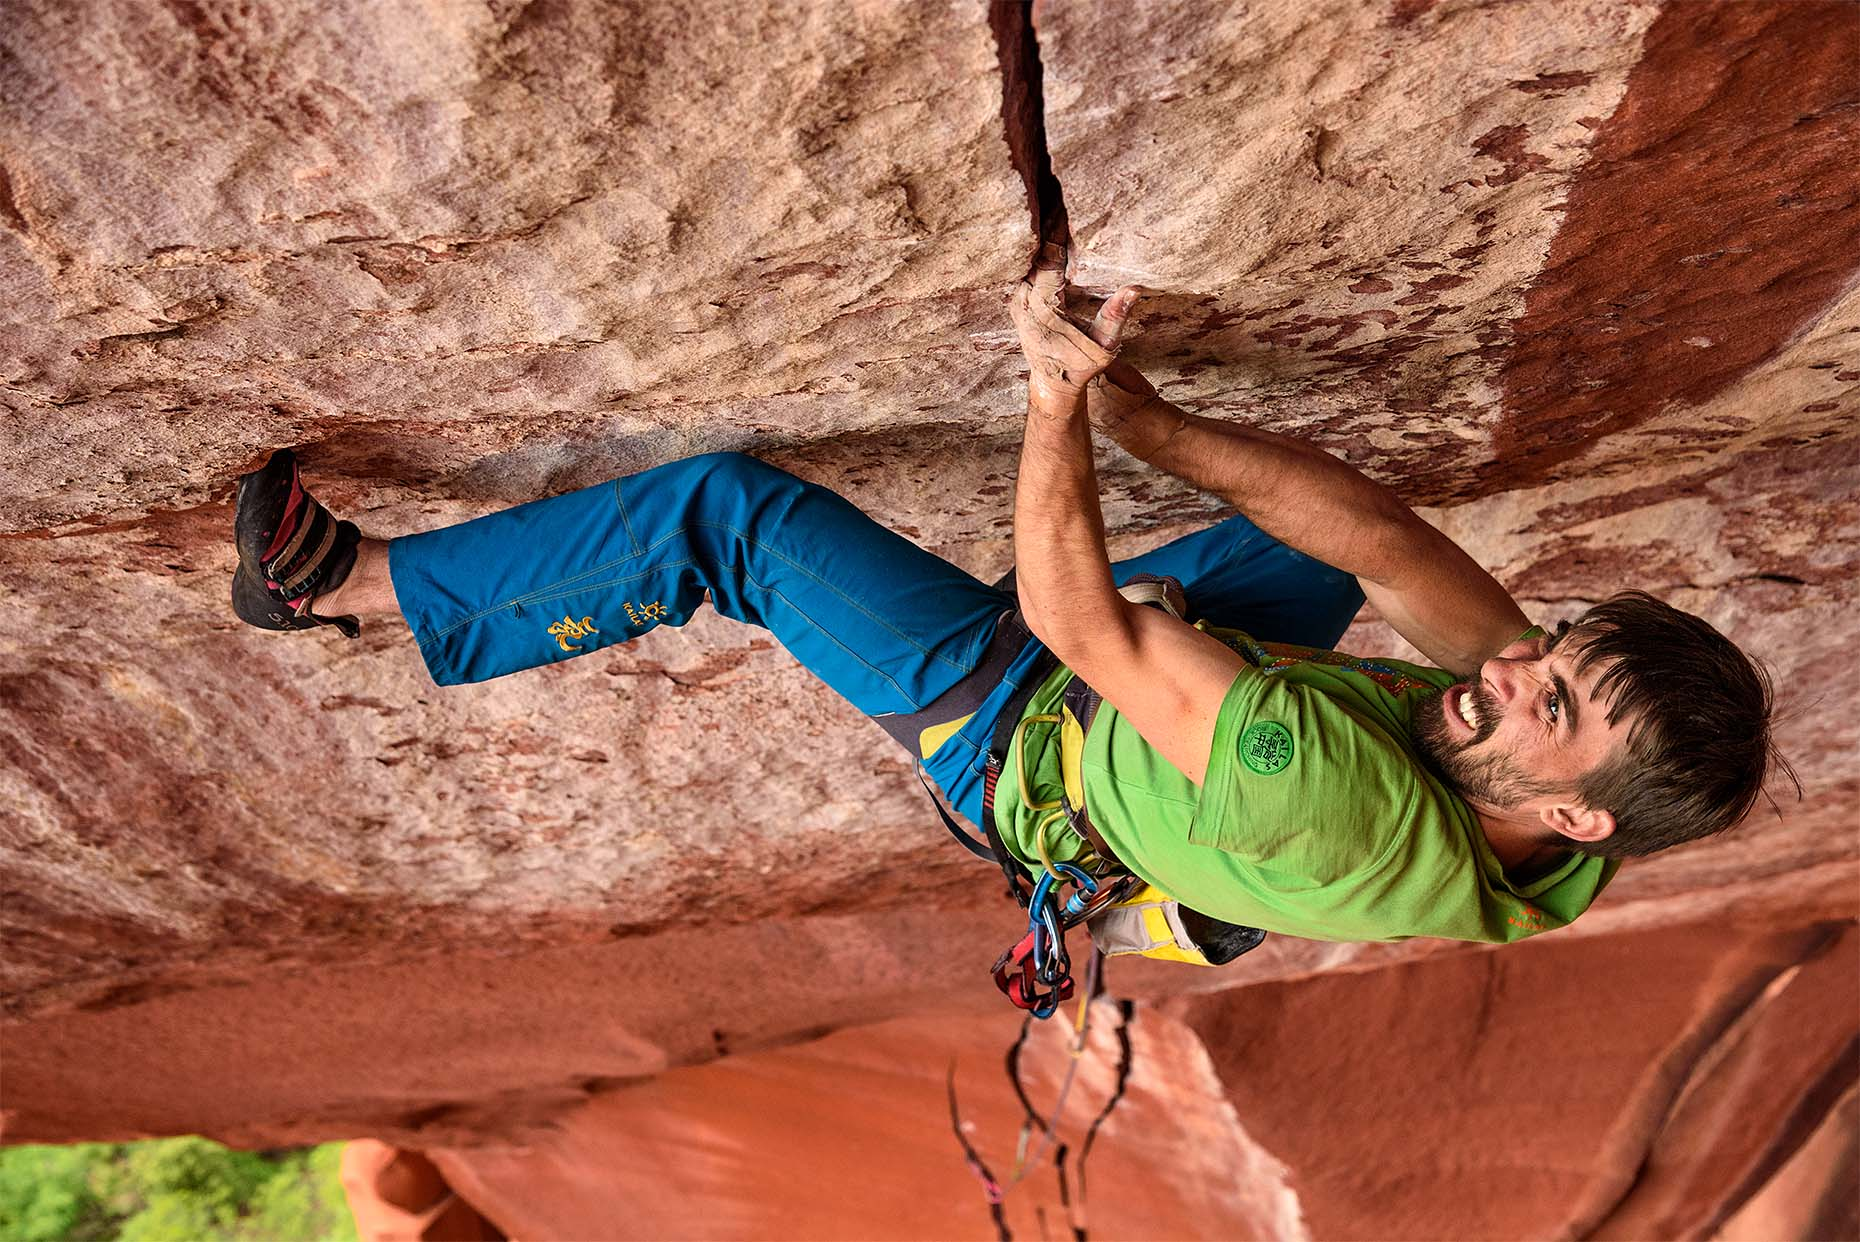 Logan Barber on First ascent of the Firewall